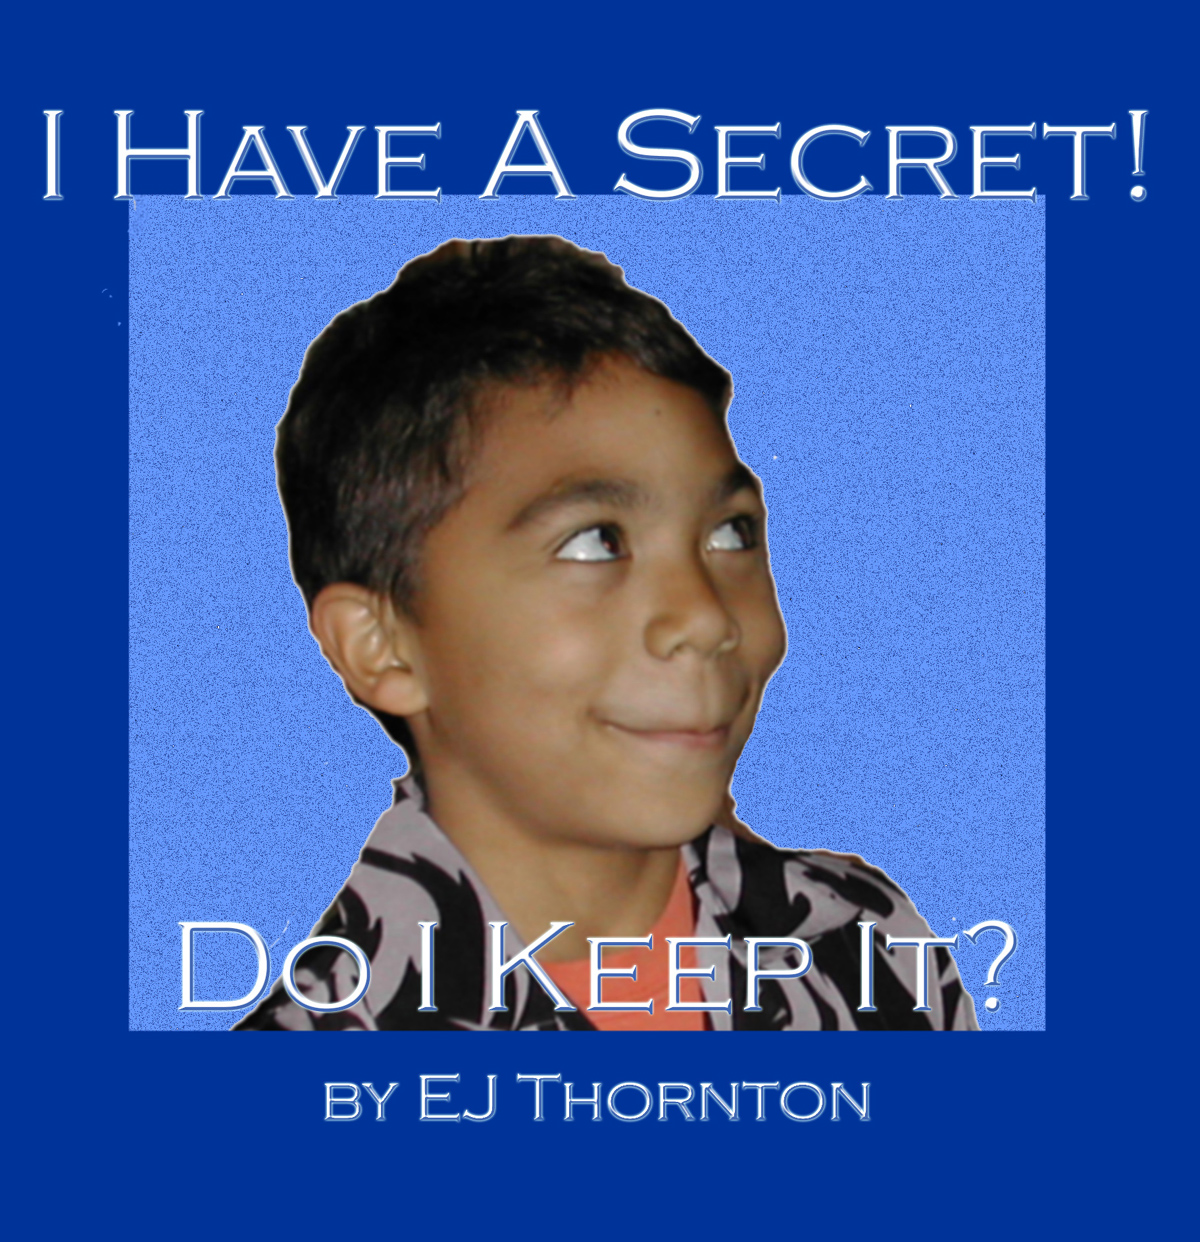 Amazon.com: I Have A Secret, Do I Keep It? eBook: Thornton, EJ: Kindle Store